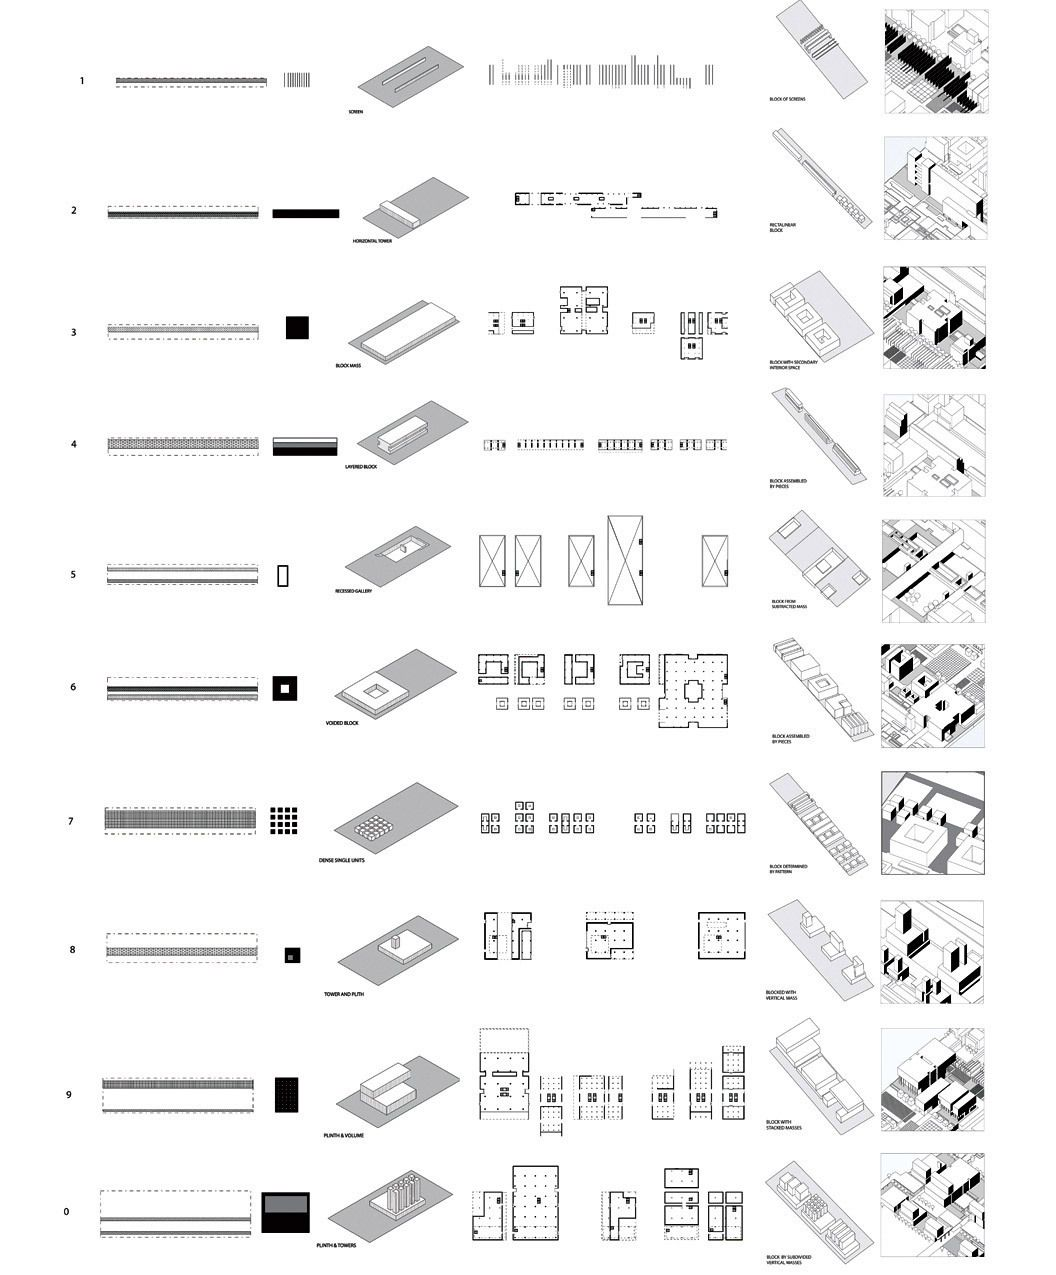 hight resolution of ungers 2 building typology diagrams